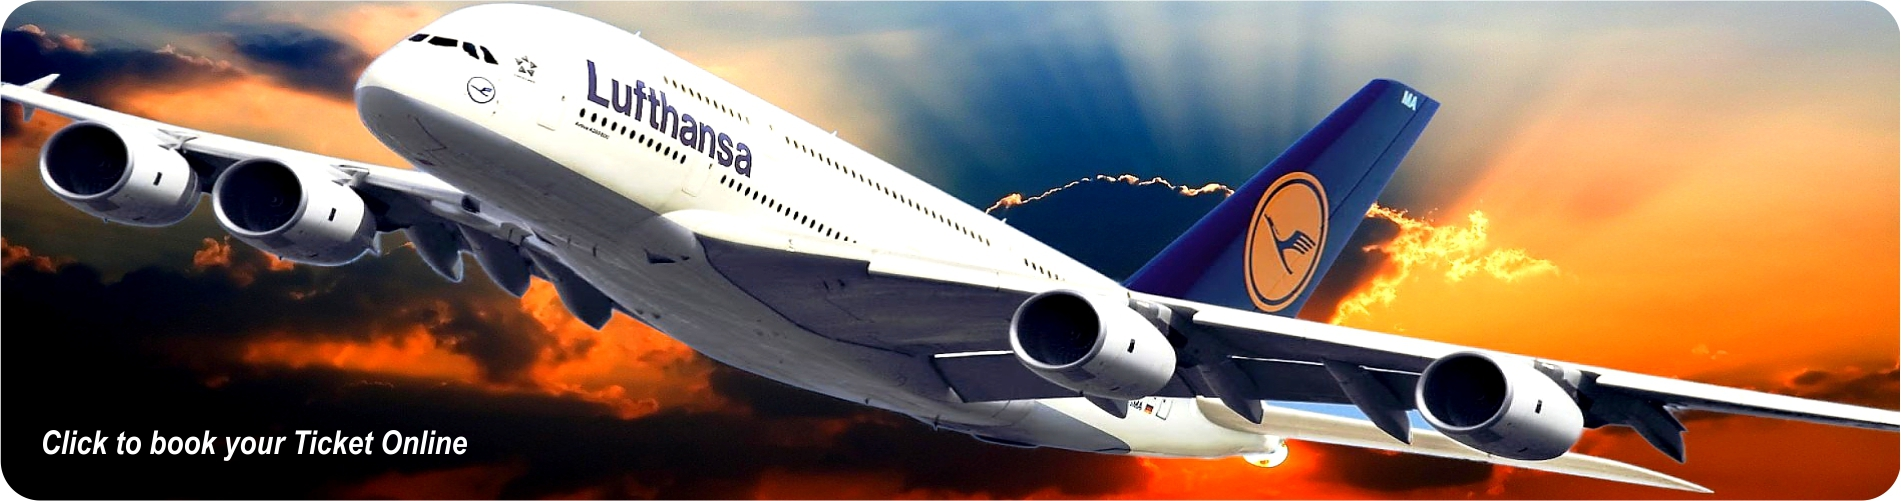 Lufthansa A380 Airlines.